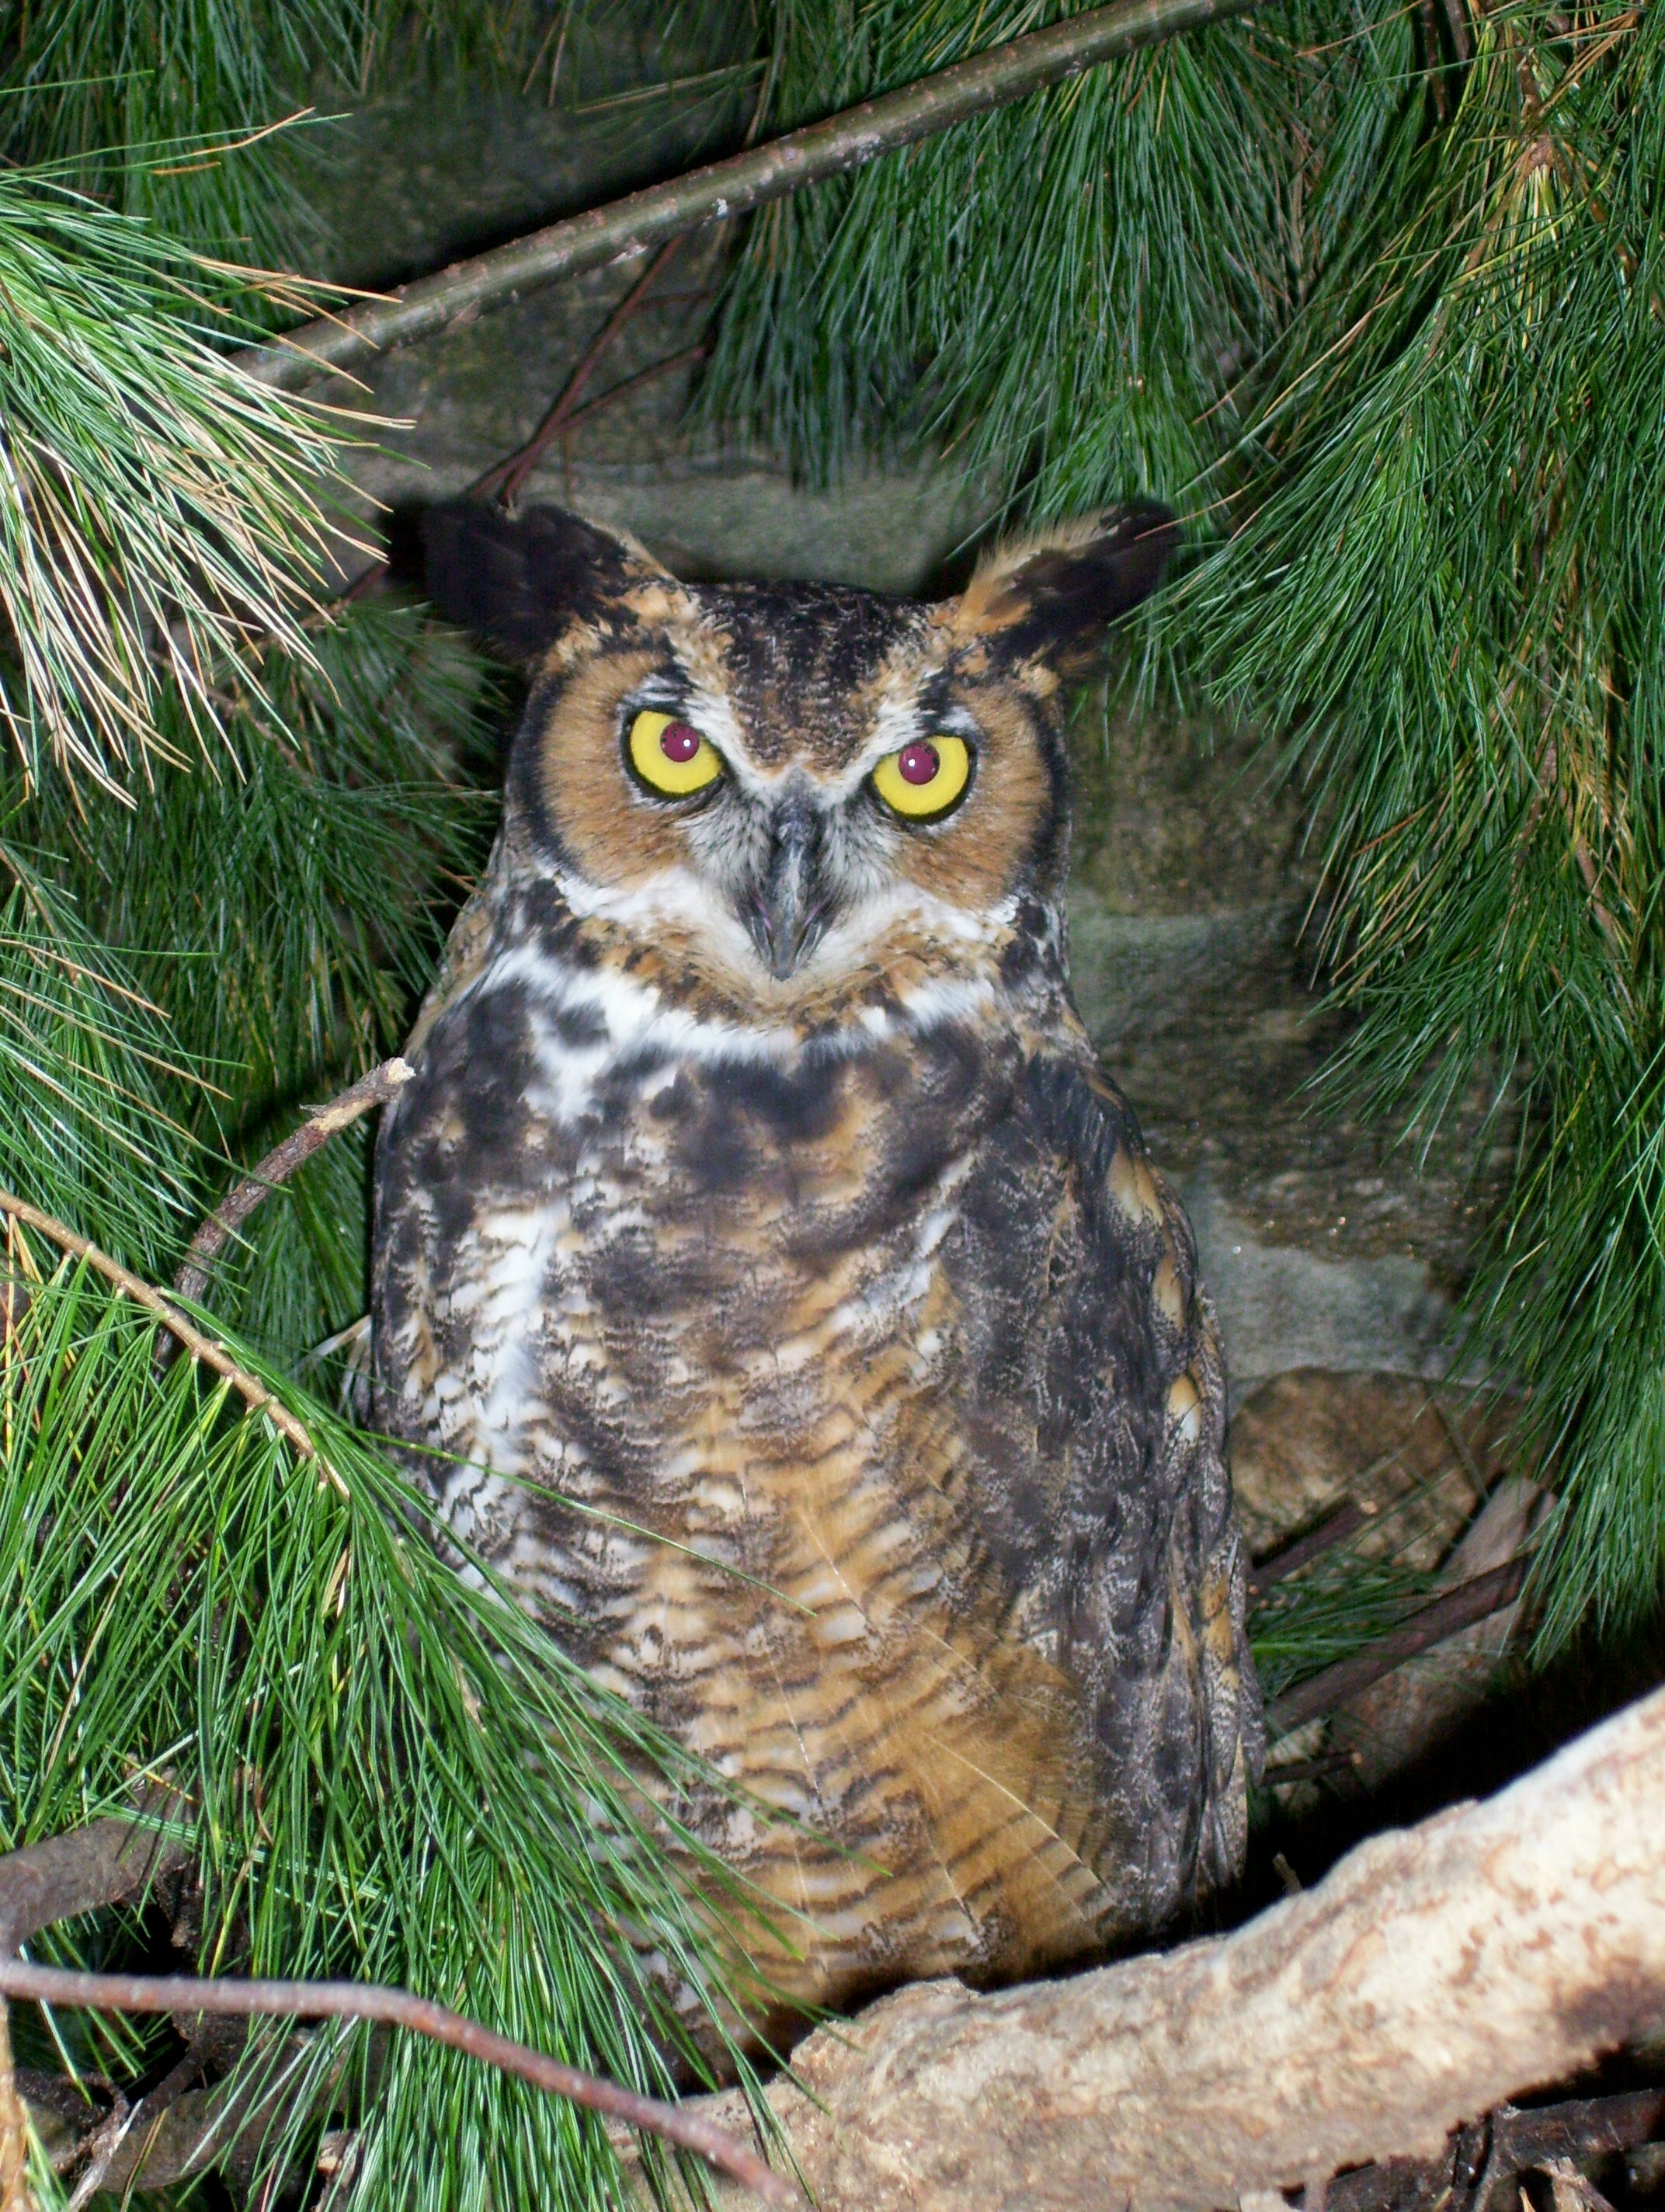 Visit Mary, our resident owl!